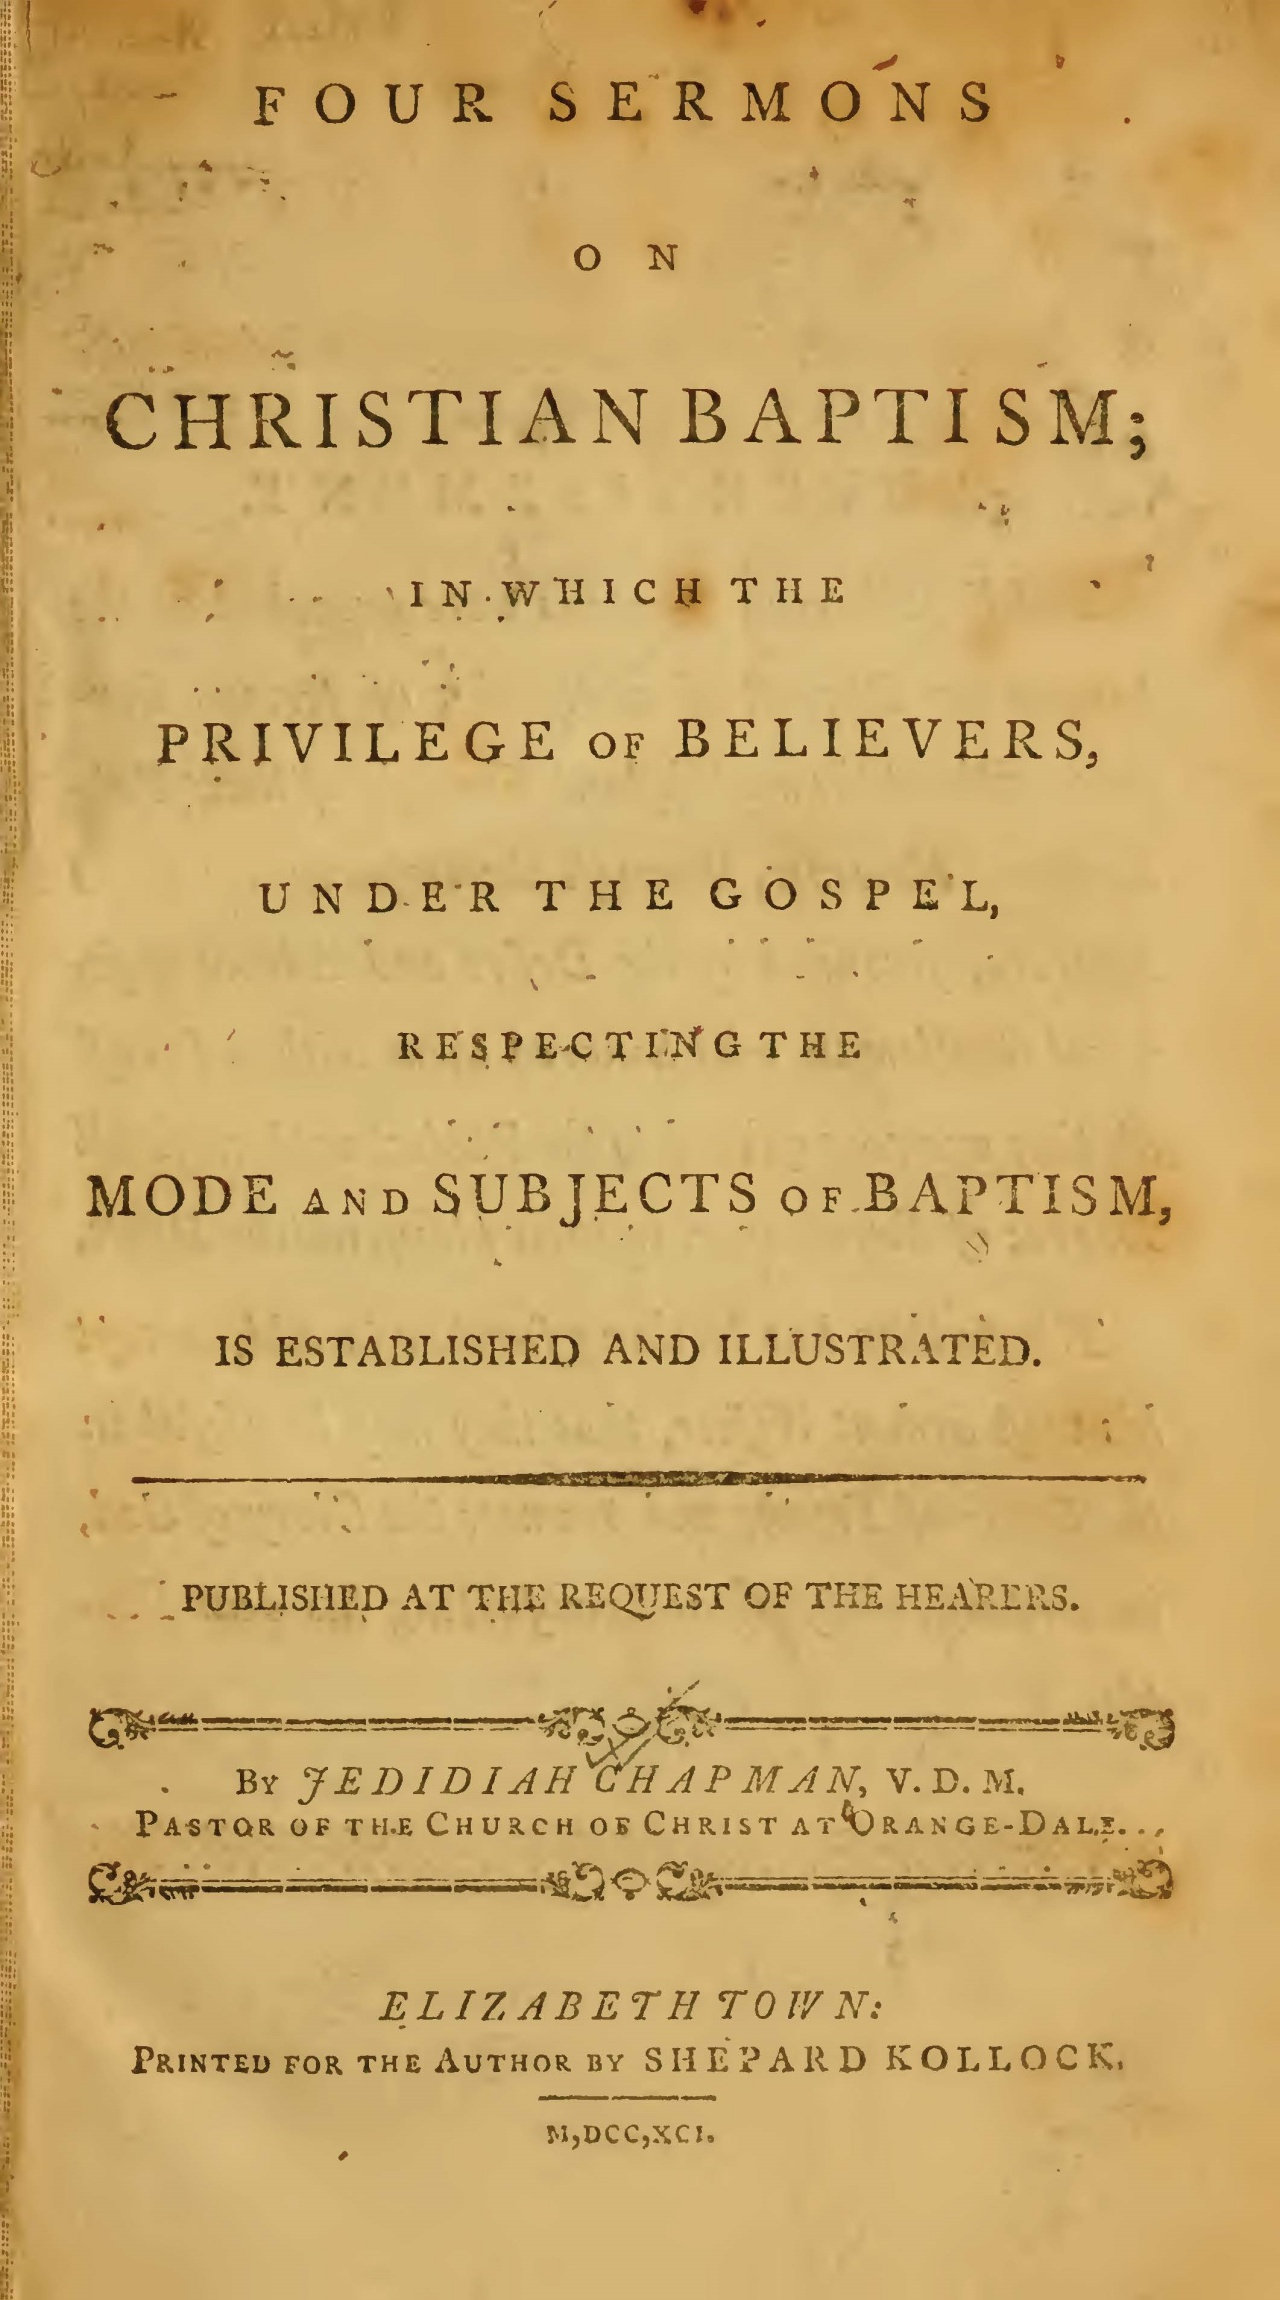 Chapman, Jedediah, Four Sermons on Christian Baptism Title Page.jpg